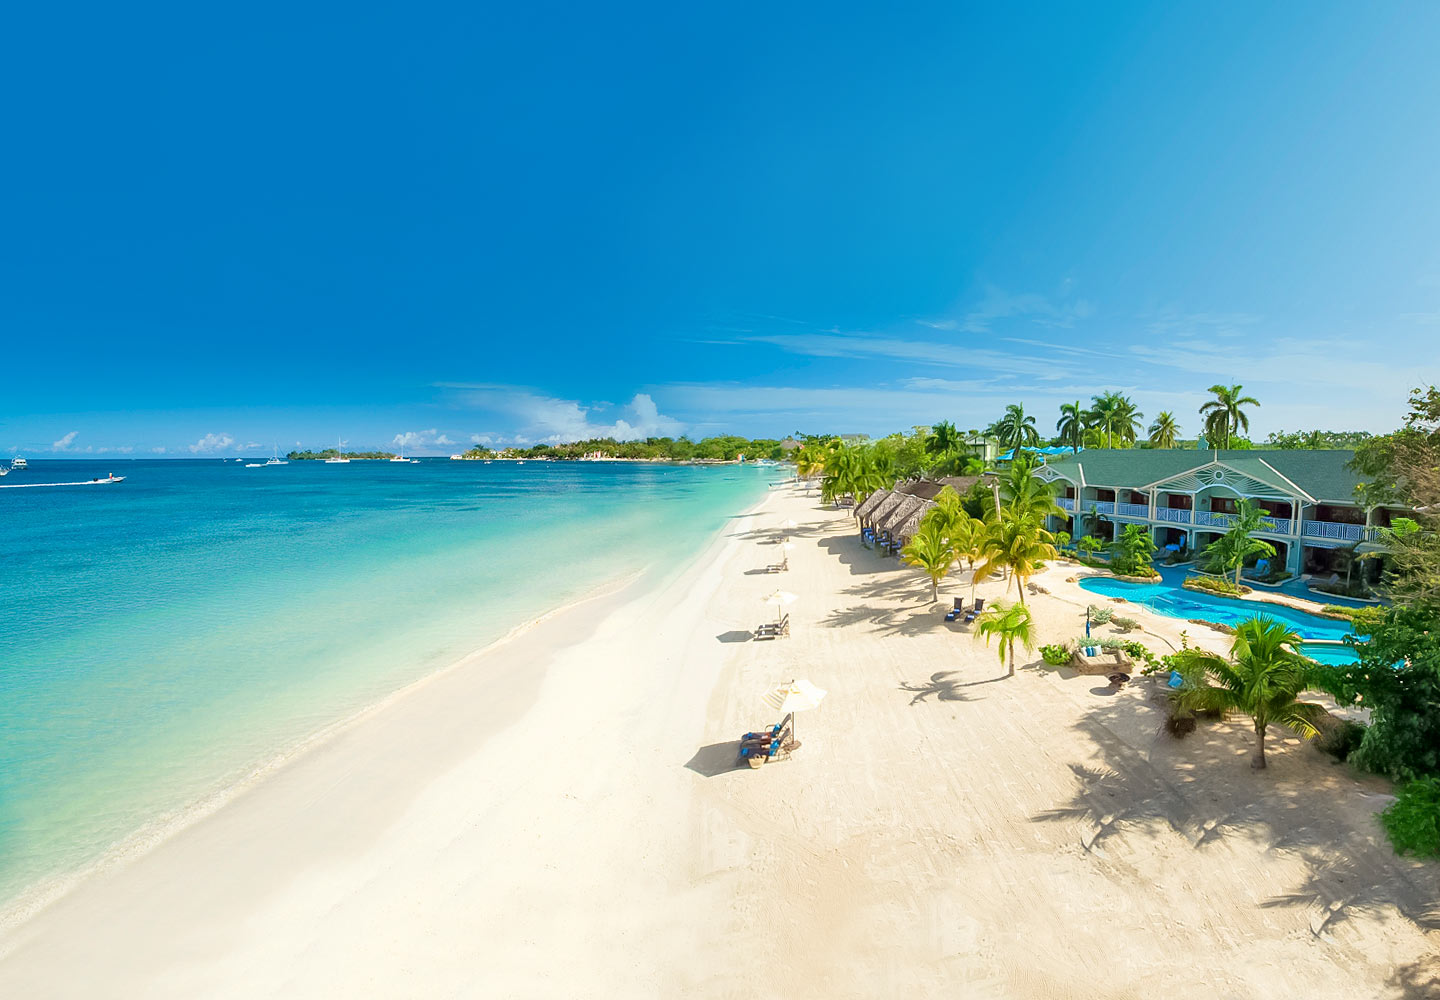 Sandals Negril Nude Beach